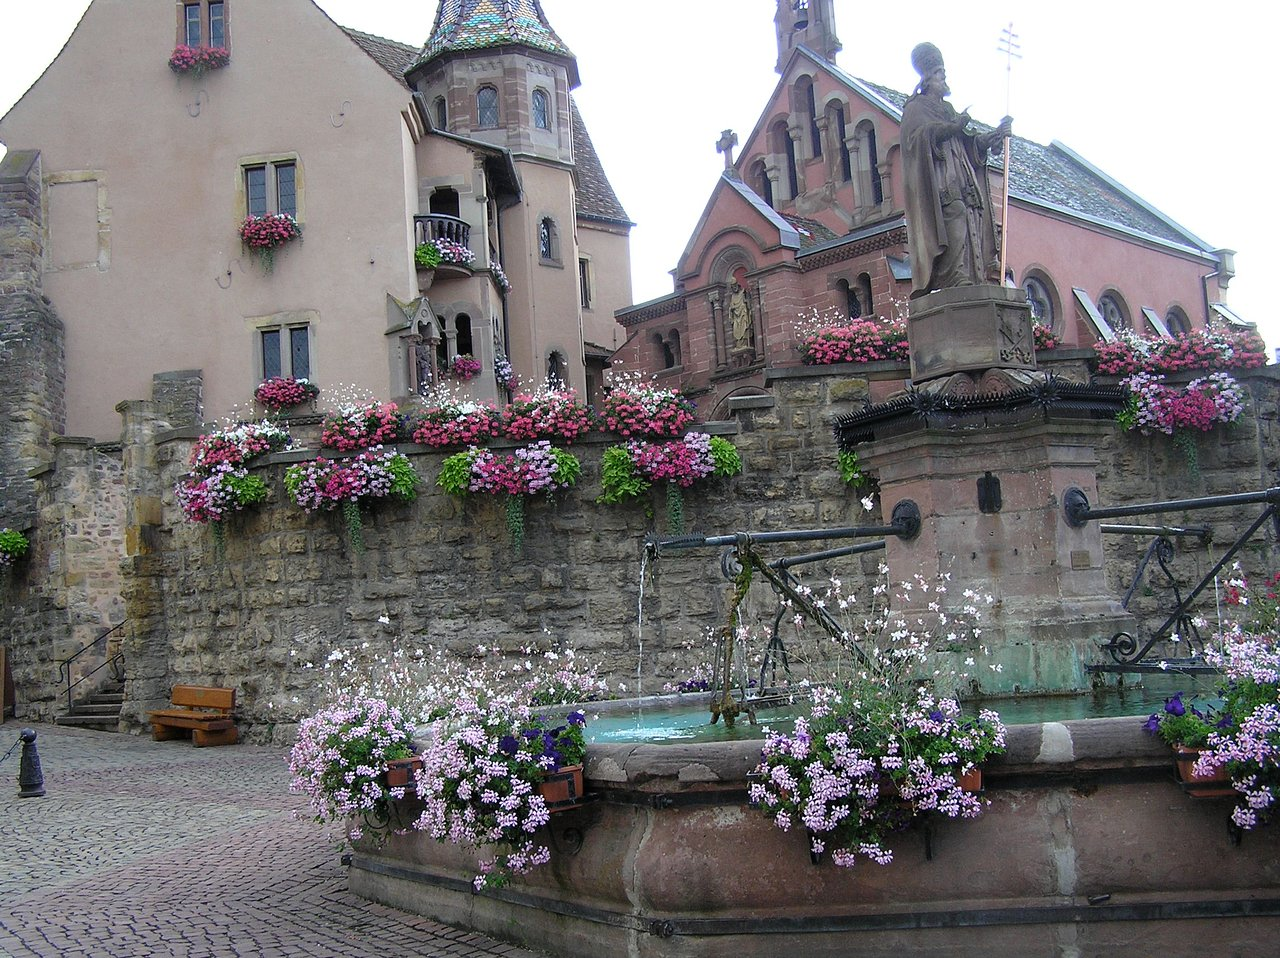 Chambre D Hote Eguisheim The 5 Best Eguisheim Bed And Breakfasts Of 2019 With Prices